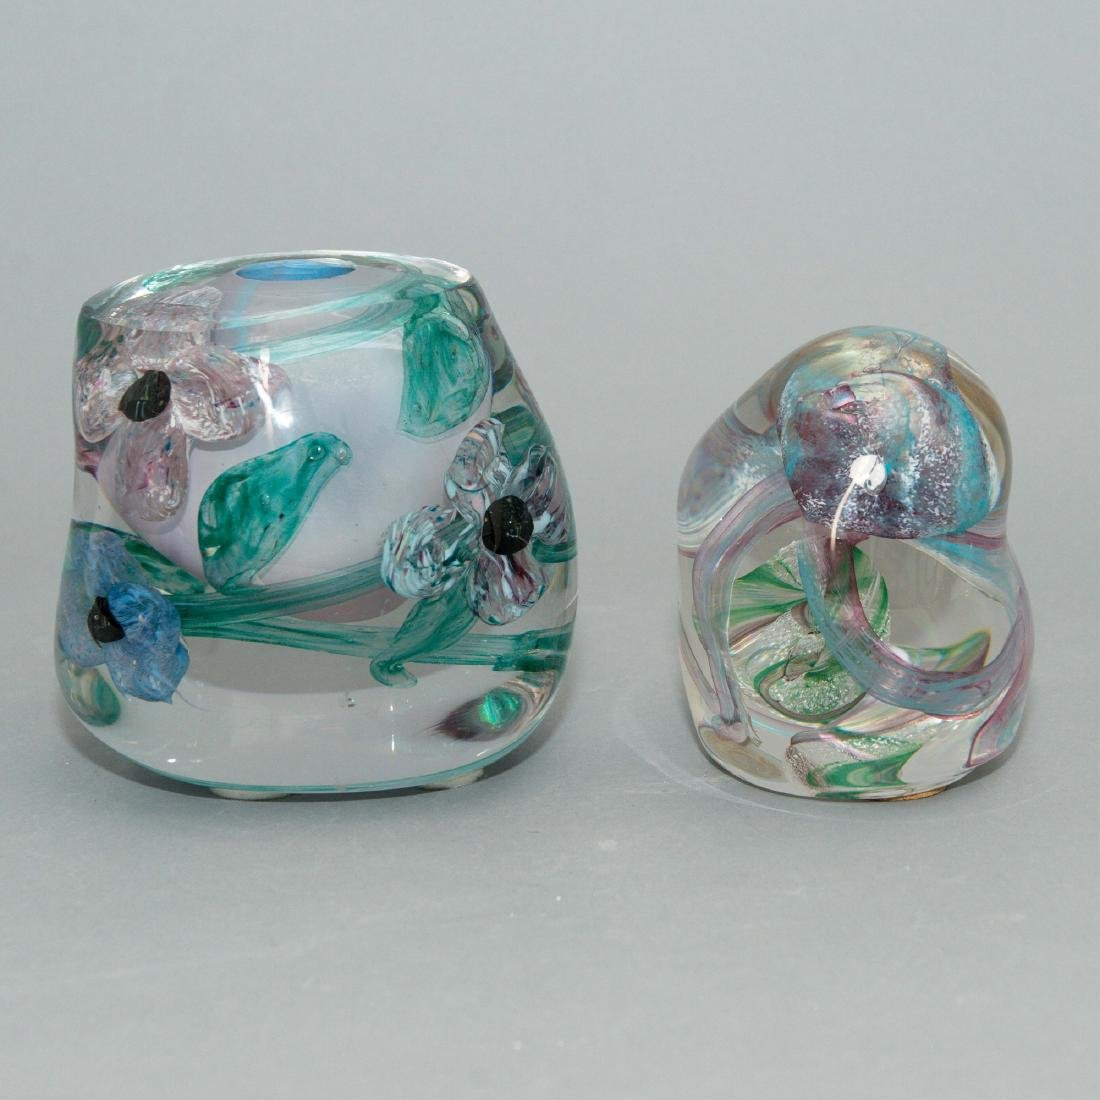 PAIR OF LISA LEYDON ART GLASS VASE AND SCULPTURE - 4